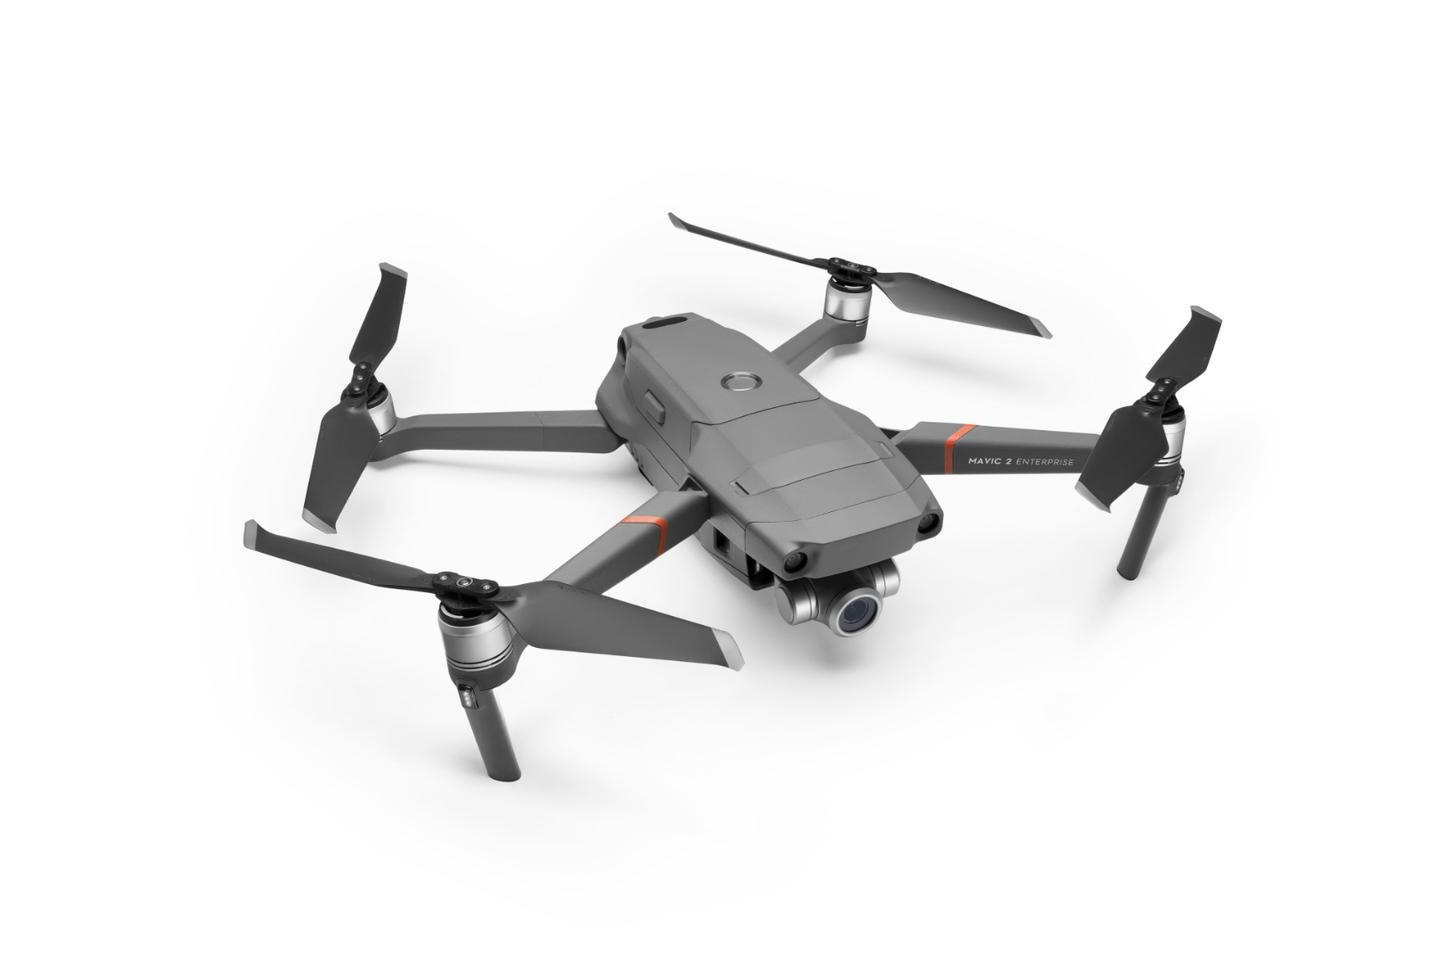 The DJI Mavic 2 Enterprise drone is a modified version of the Zoom launched in August, 2018